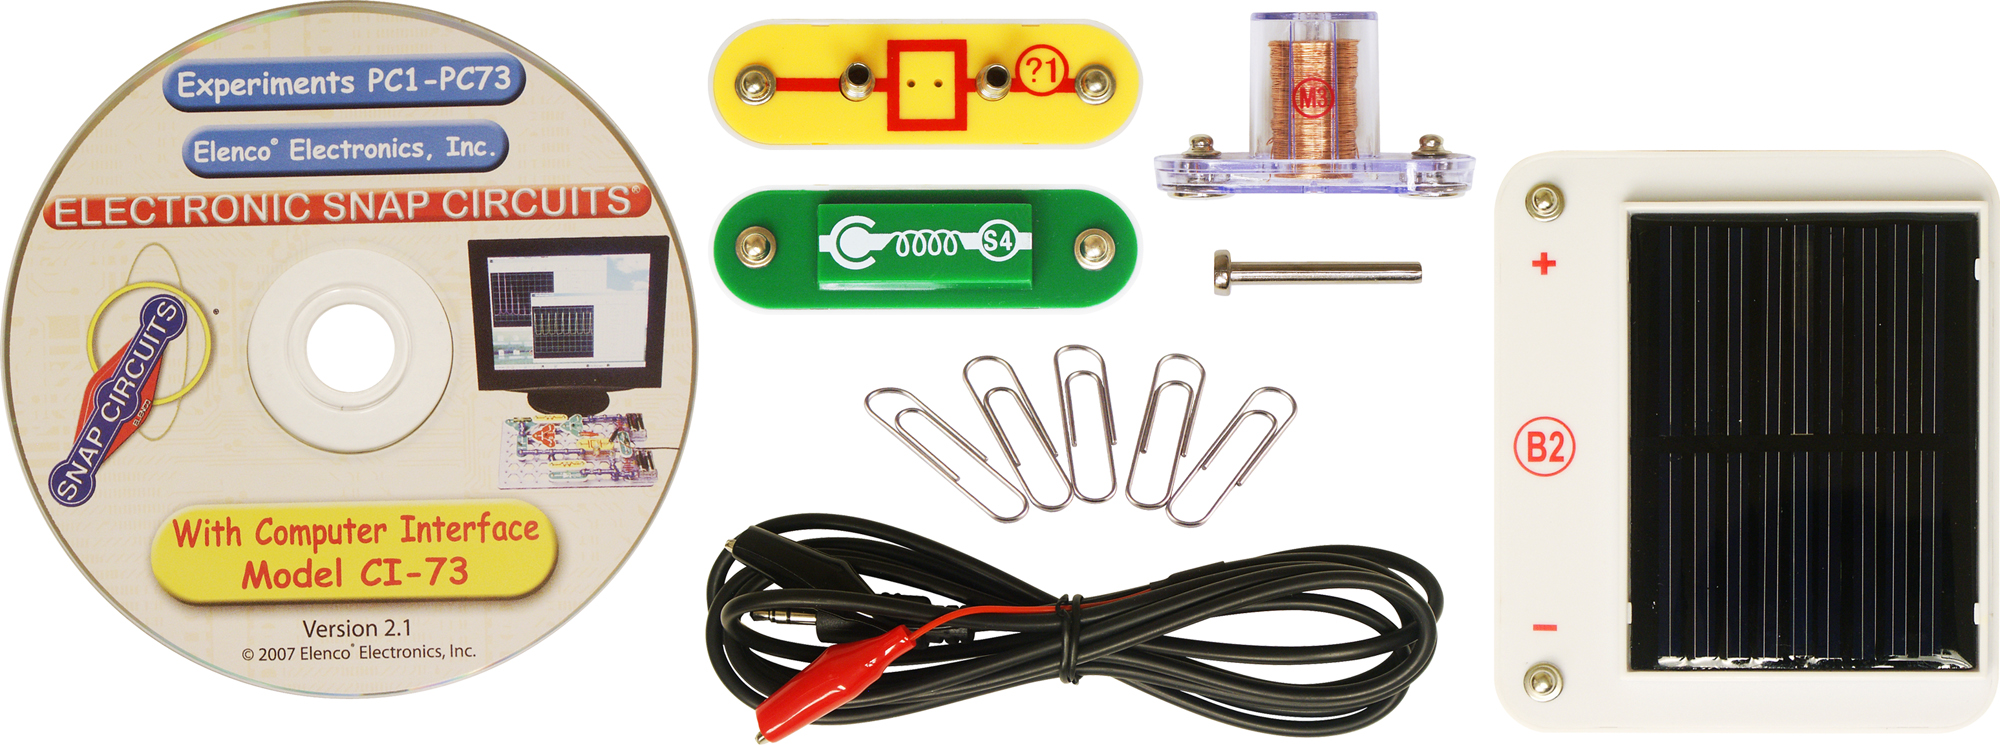 Snap Circuits Uc 80 Complete Wiring Diagrams Elenco Electronics Lights Purchase Upgrade Kit Sc 500 To 750 Rh Studica Com Extreme Motion